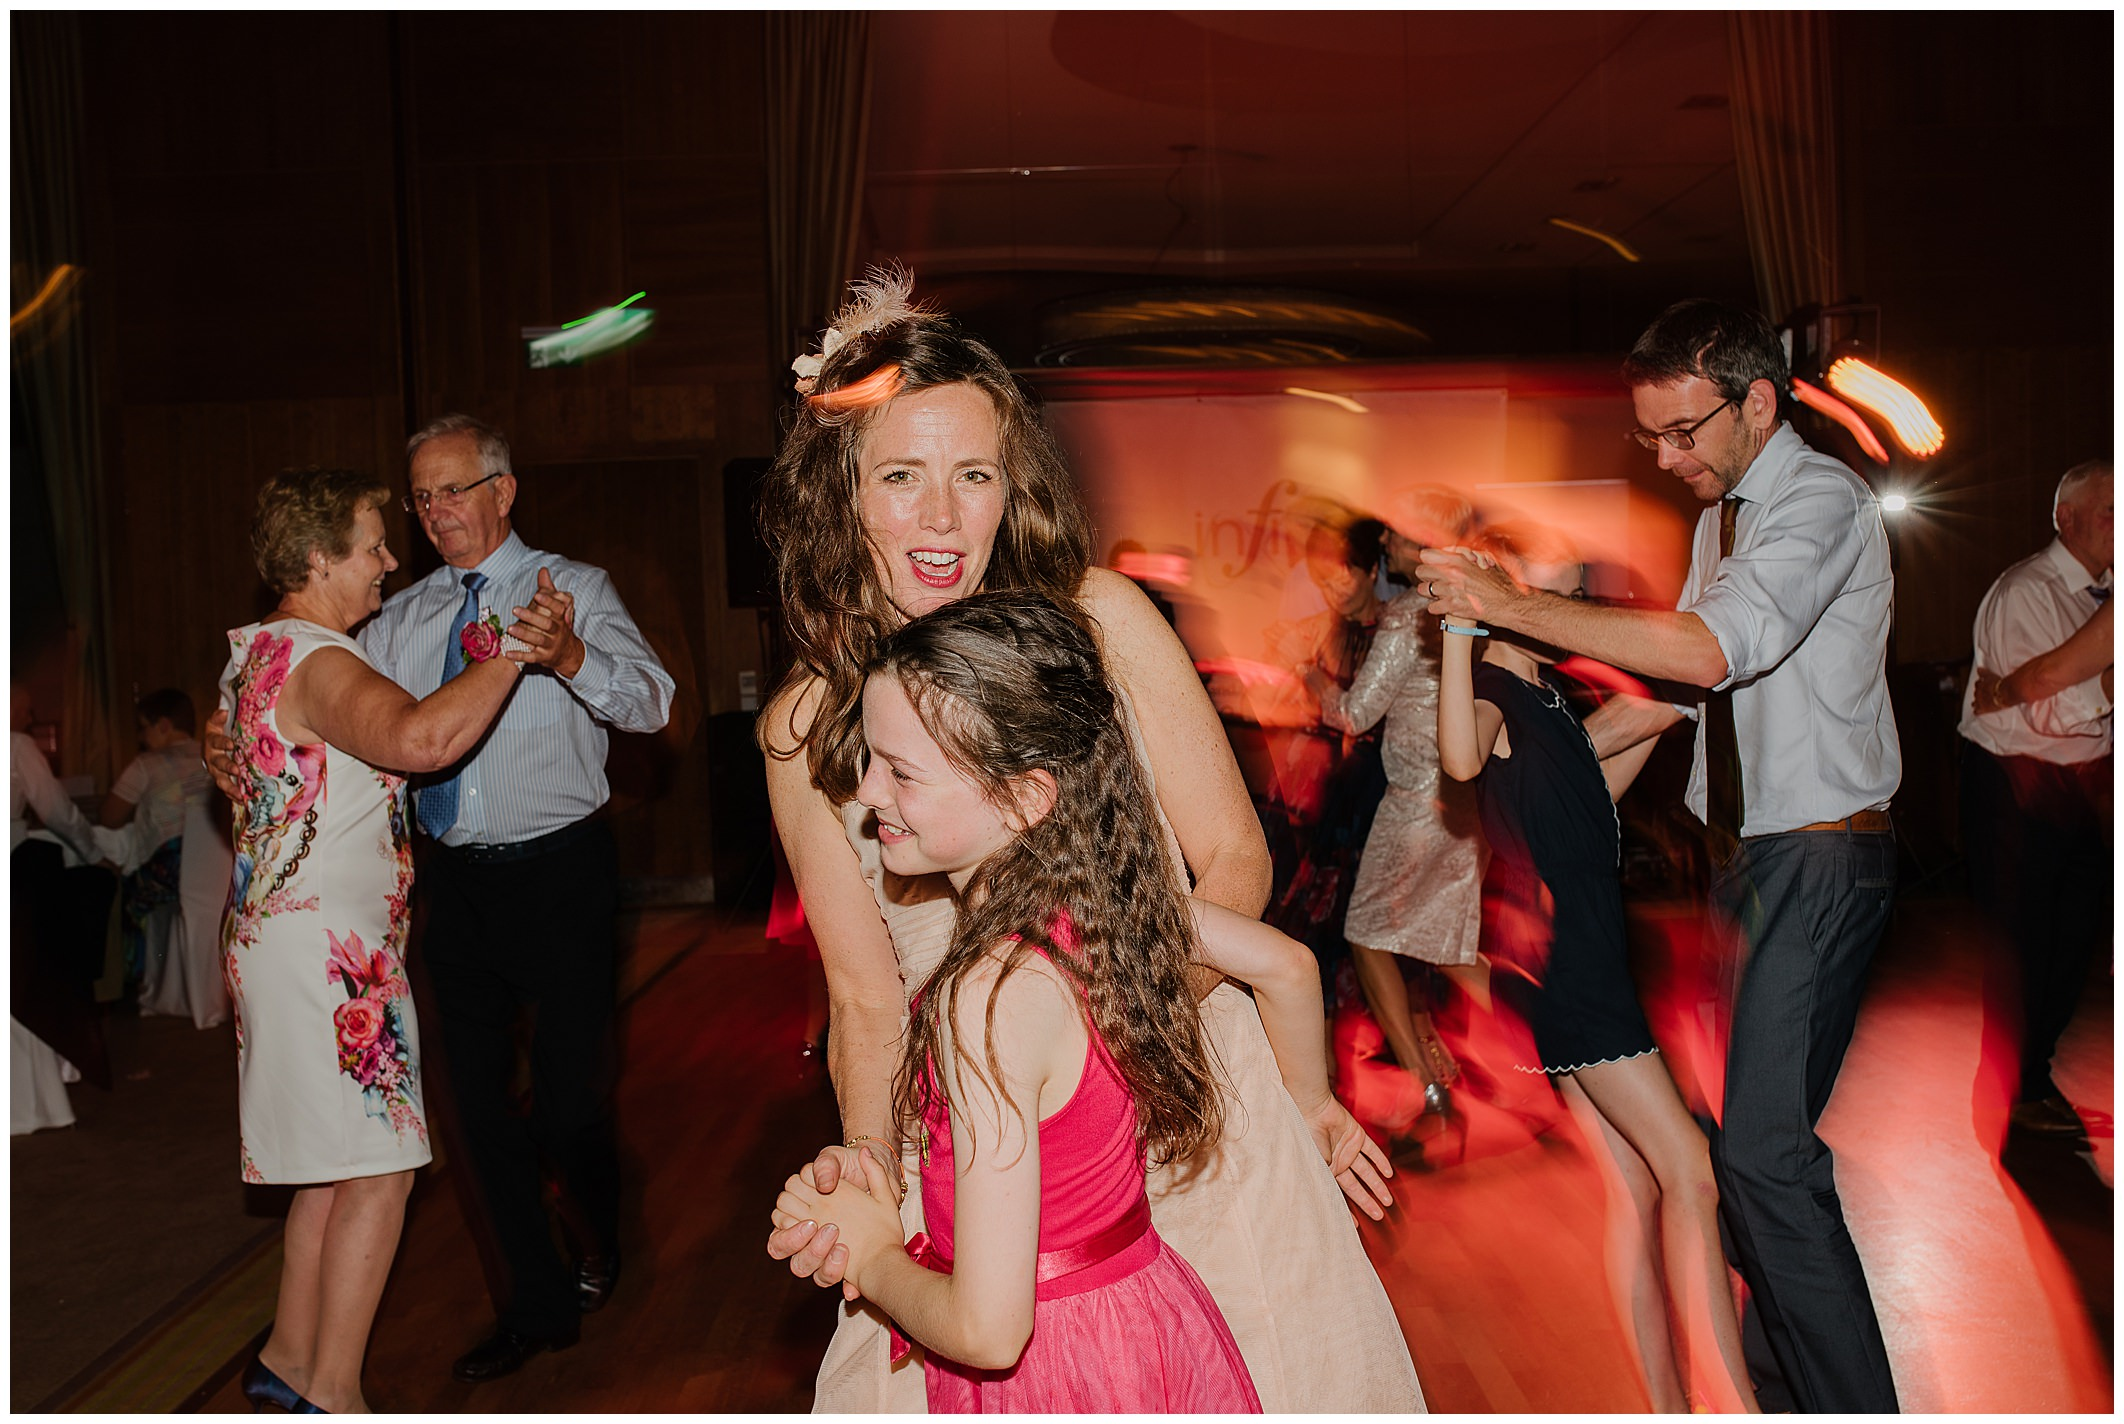 farnham-estate-wedding-jude-browne-photography_0227.jpg